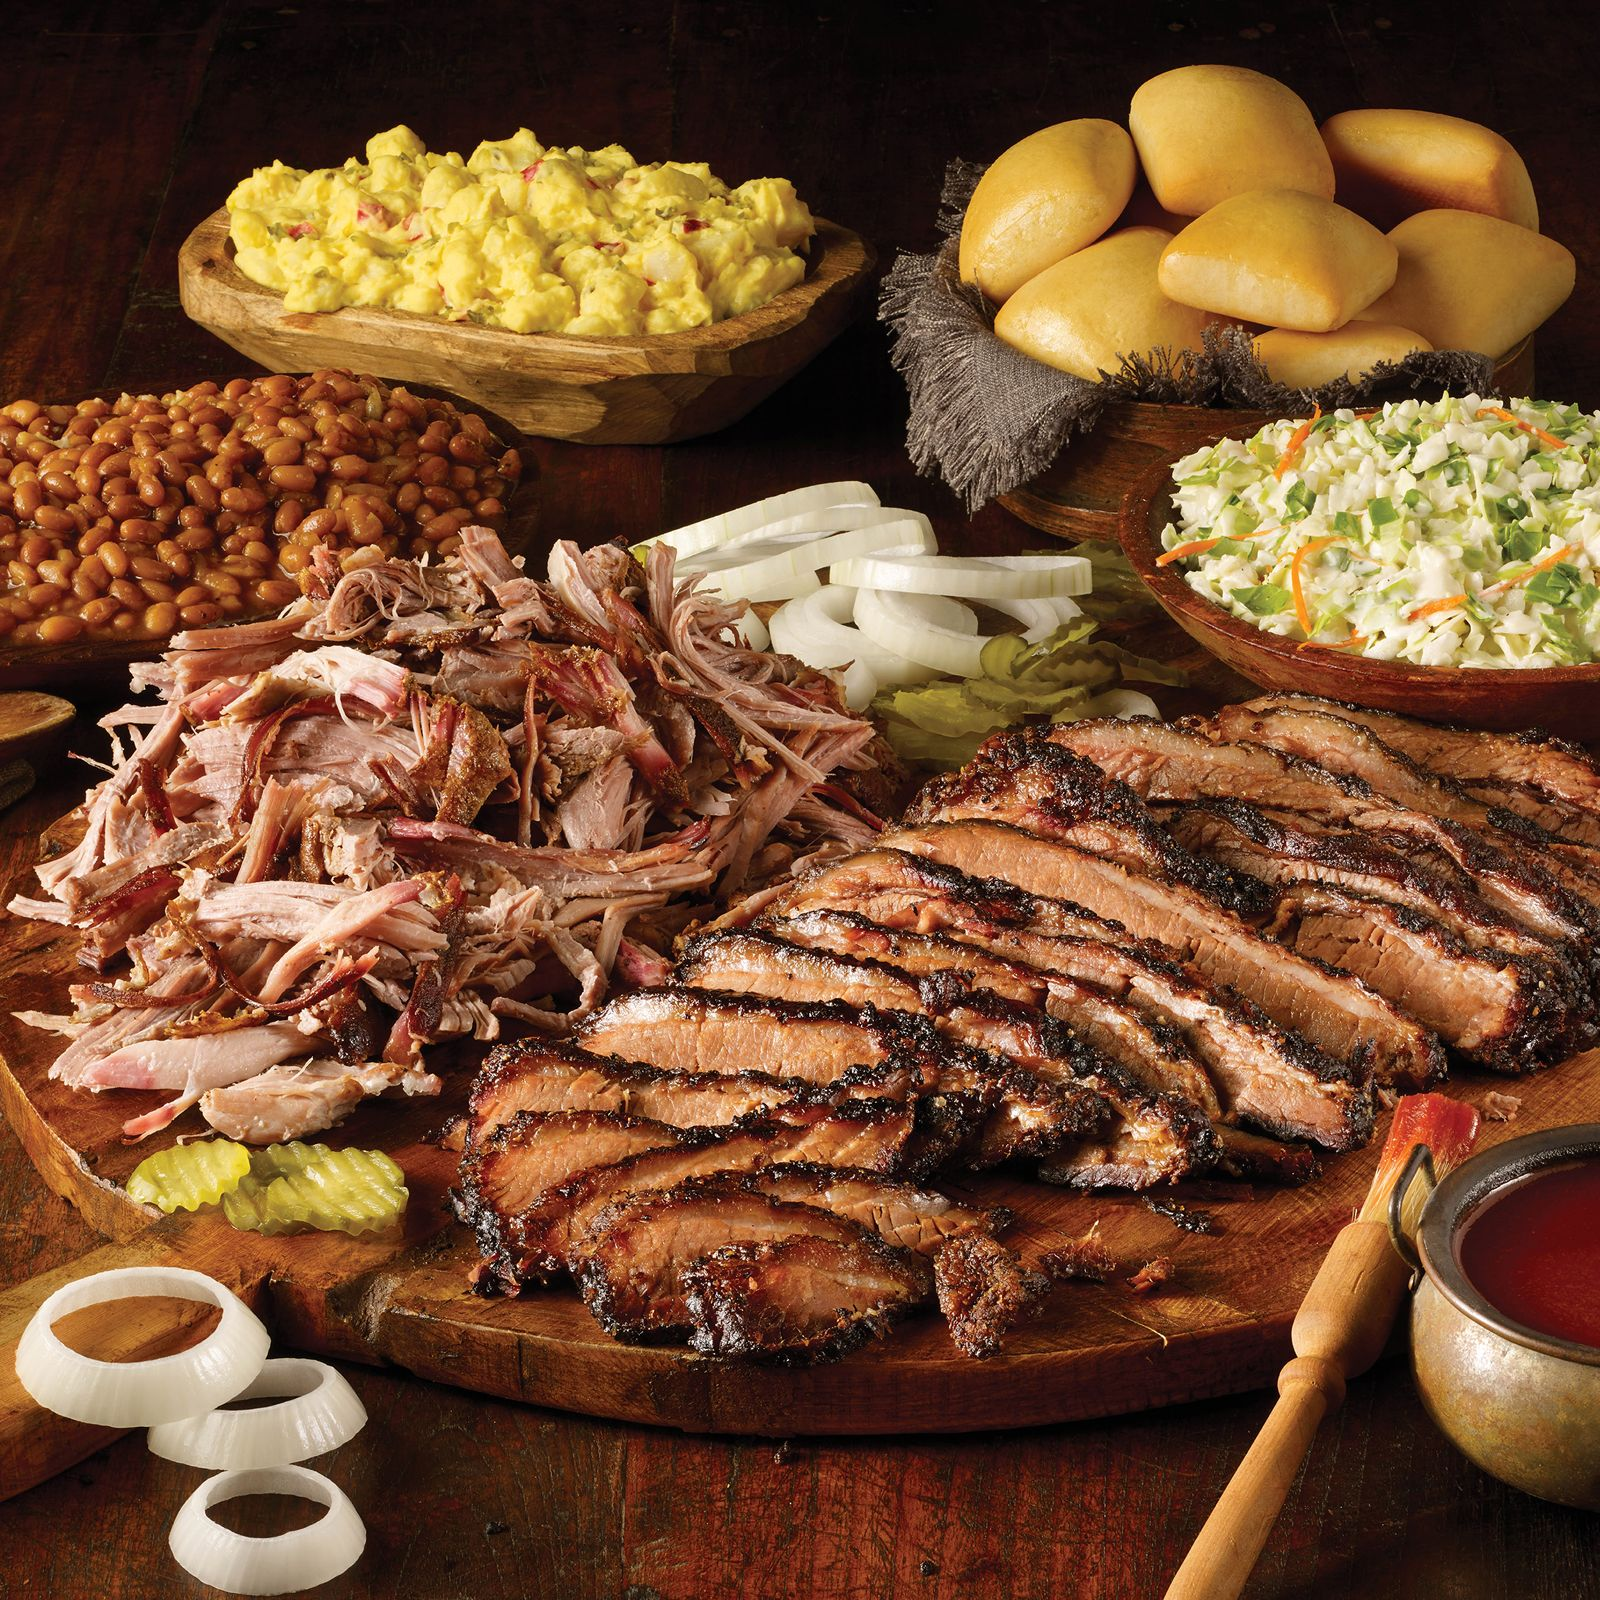 Dickey's Barbecue Pit Kicks-off New Decade with Deal for New Franchisees